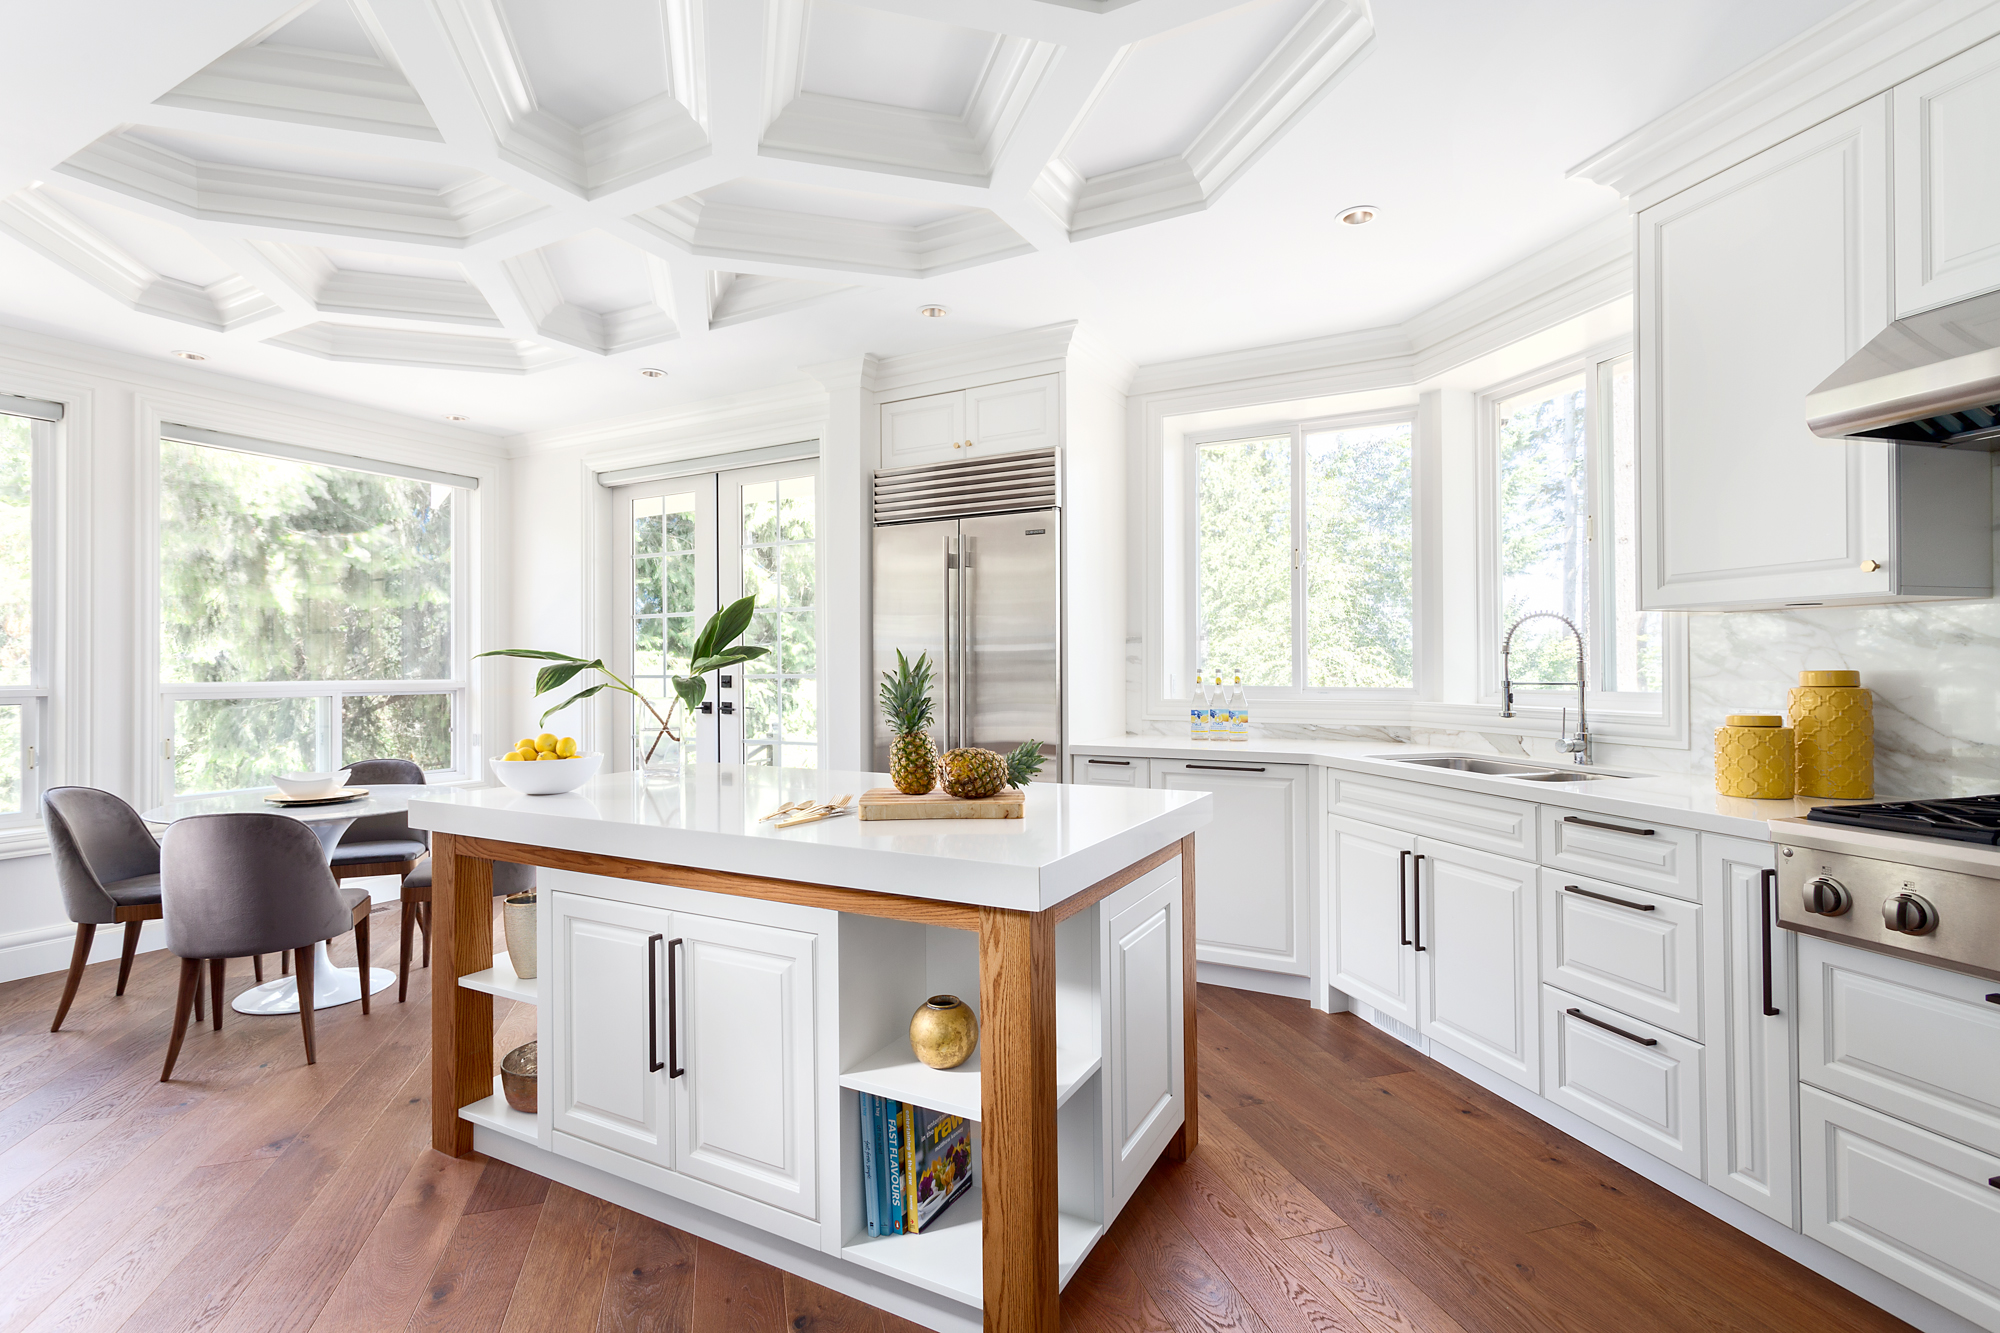 8 Kitchen Islands That Are Inspiring And Stylish_4